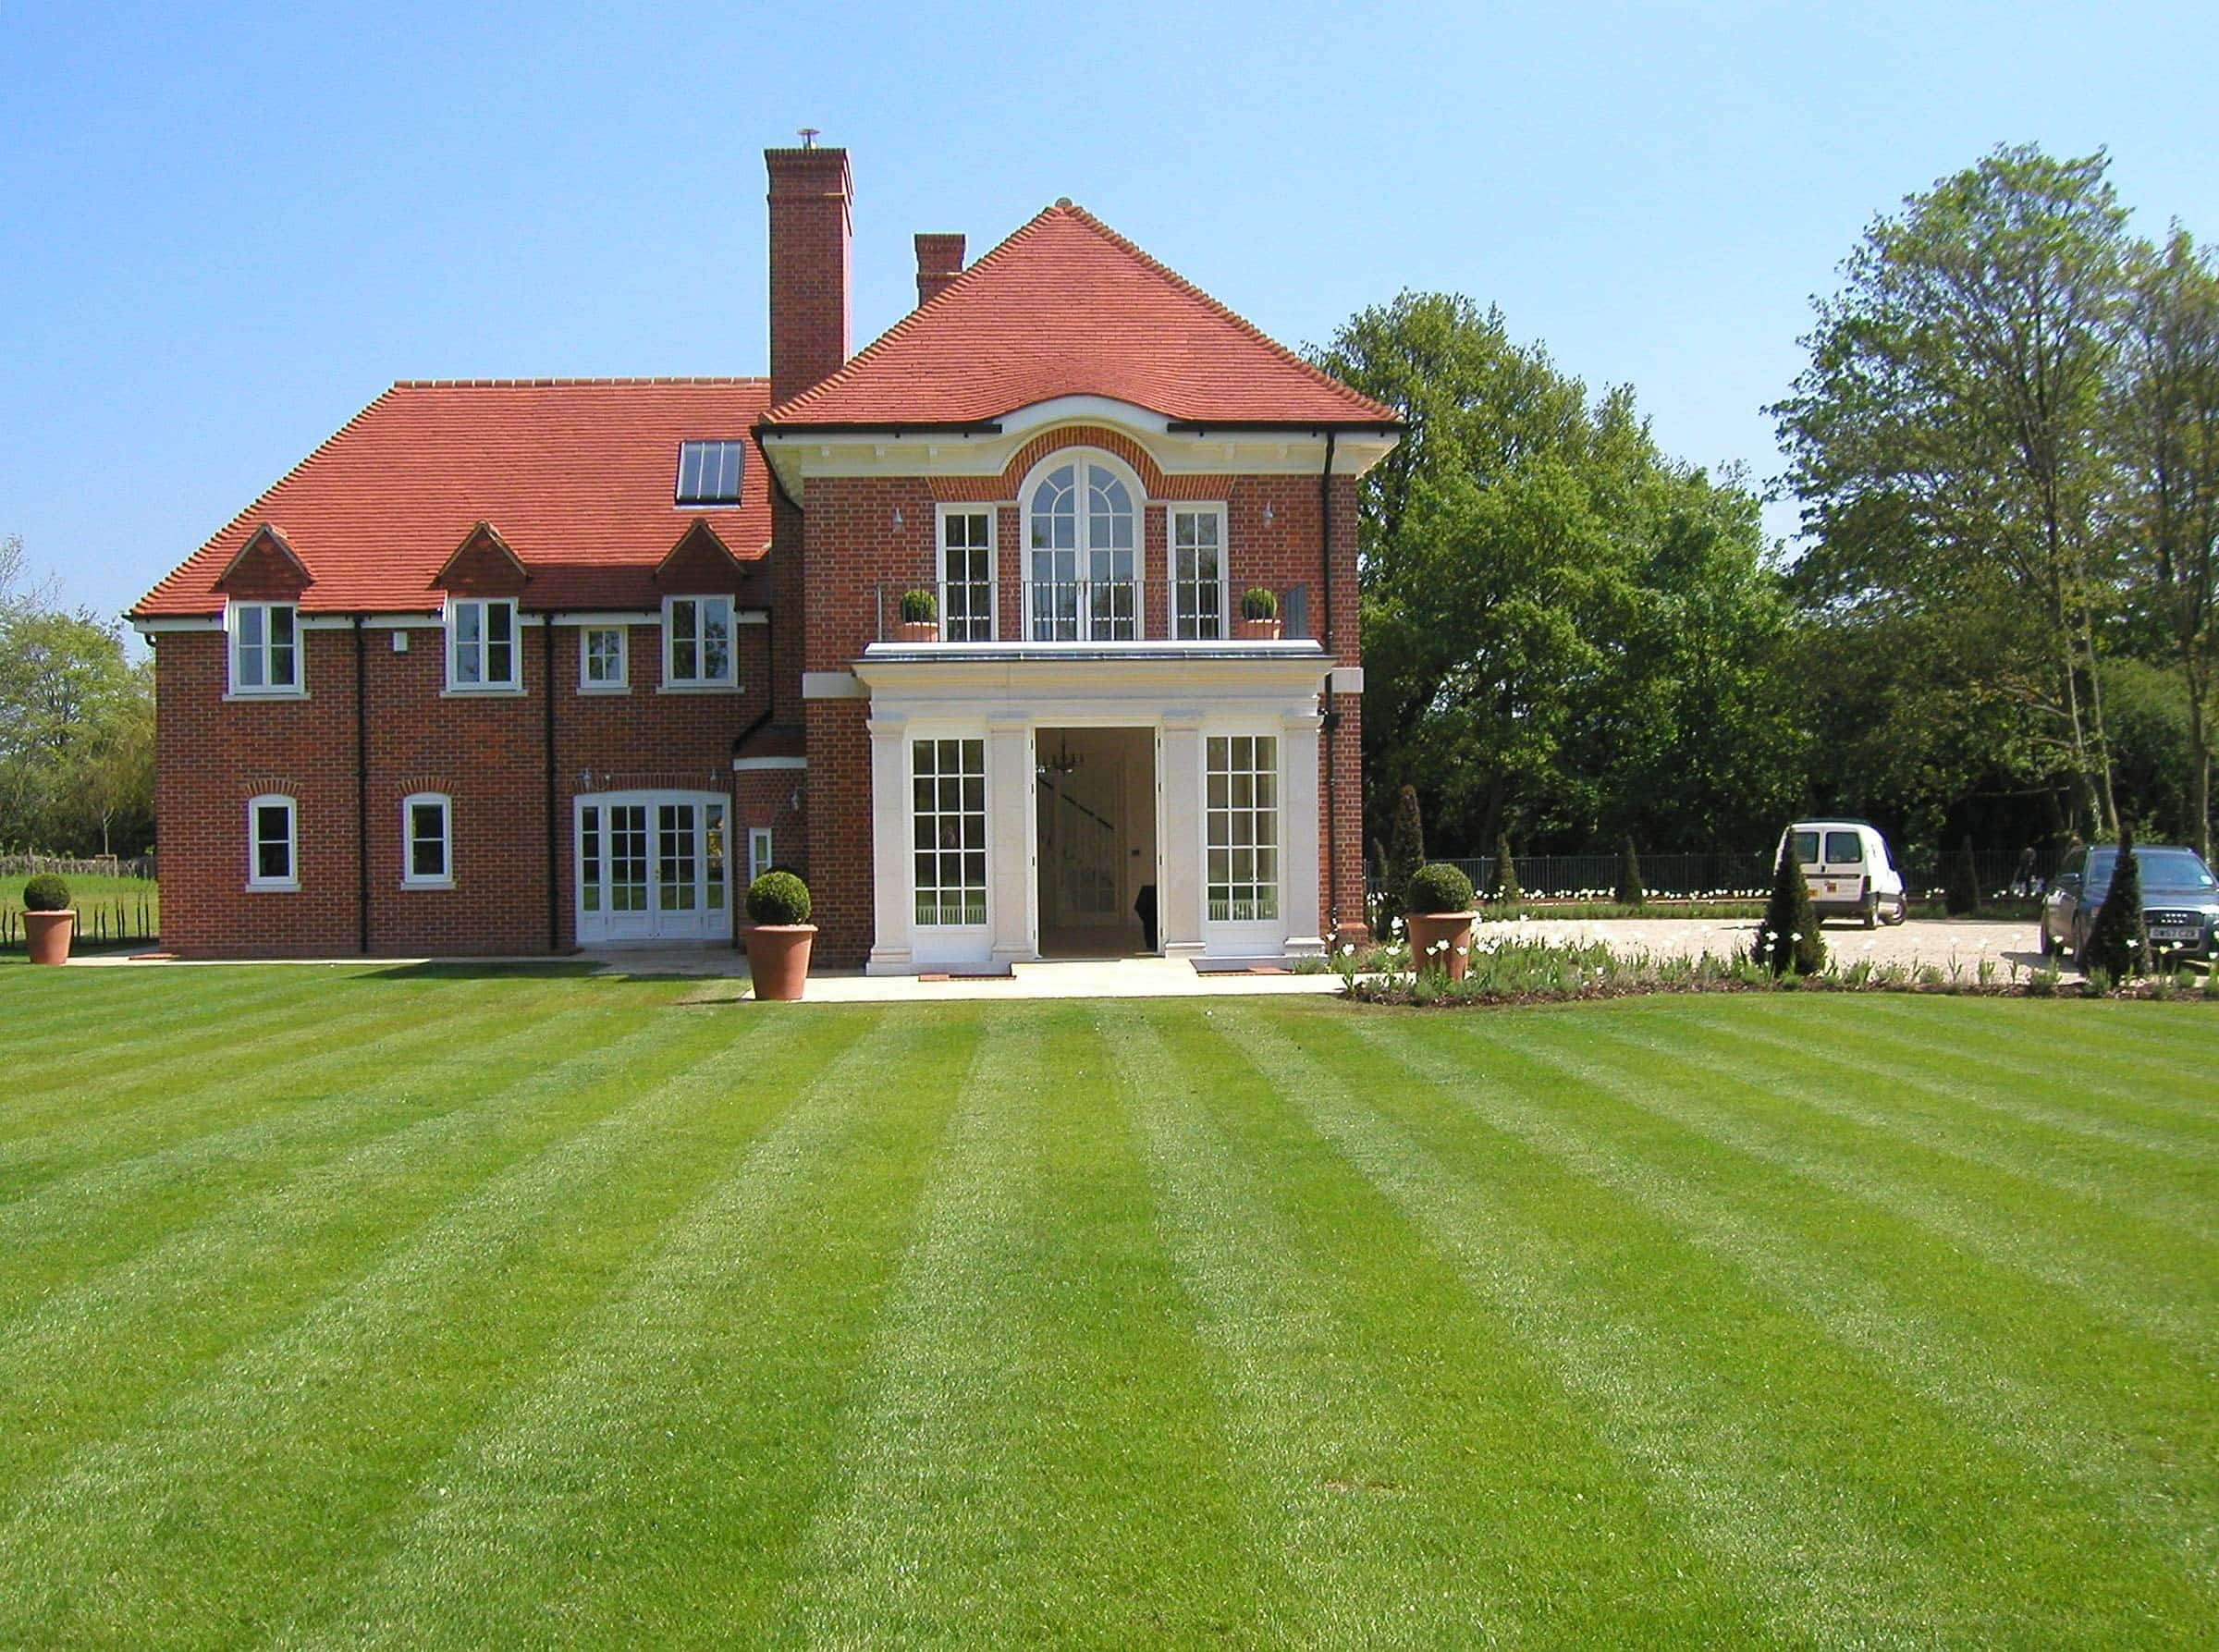 New house, Berkshire